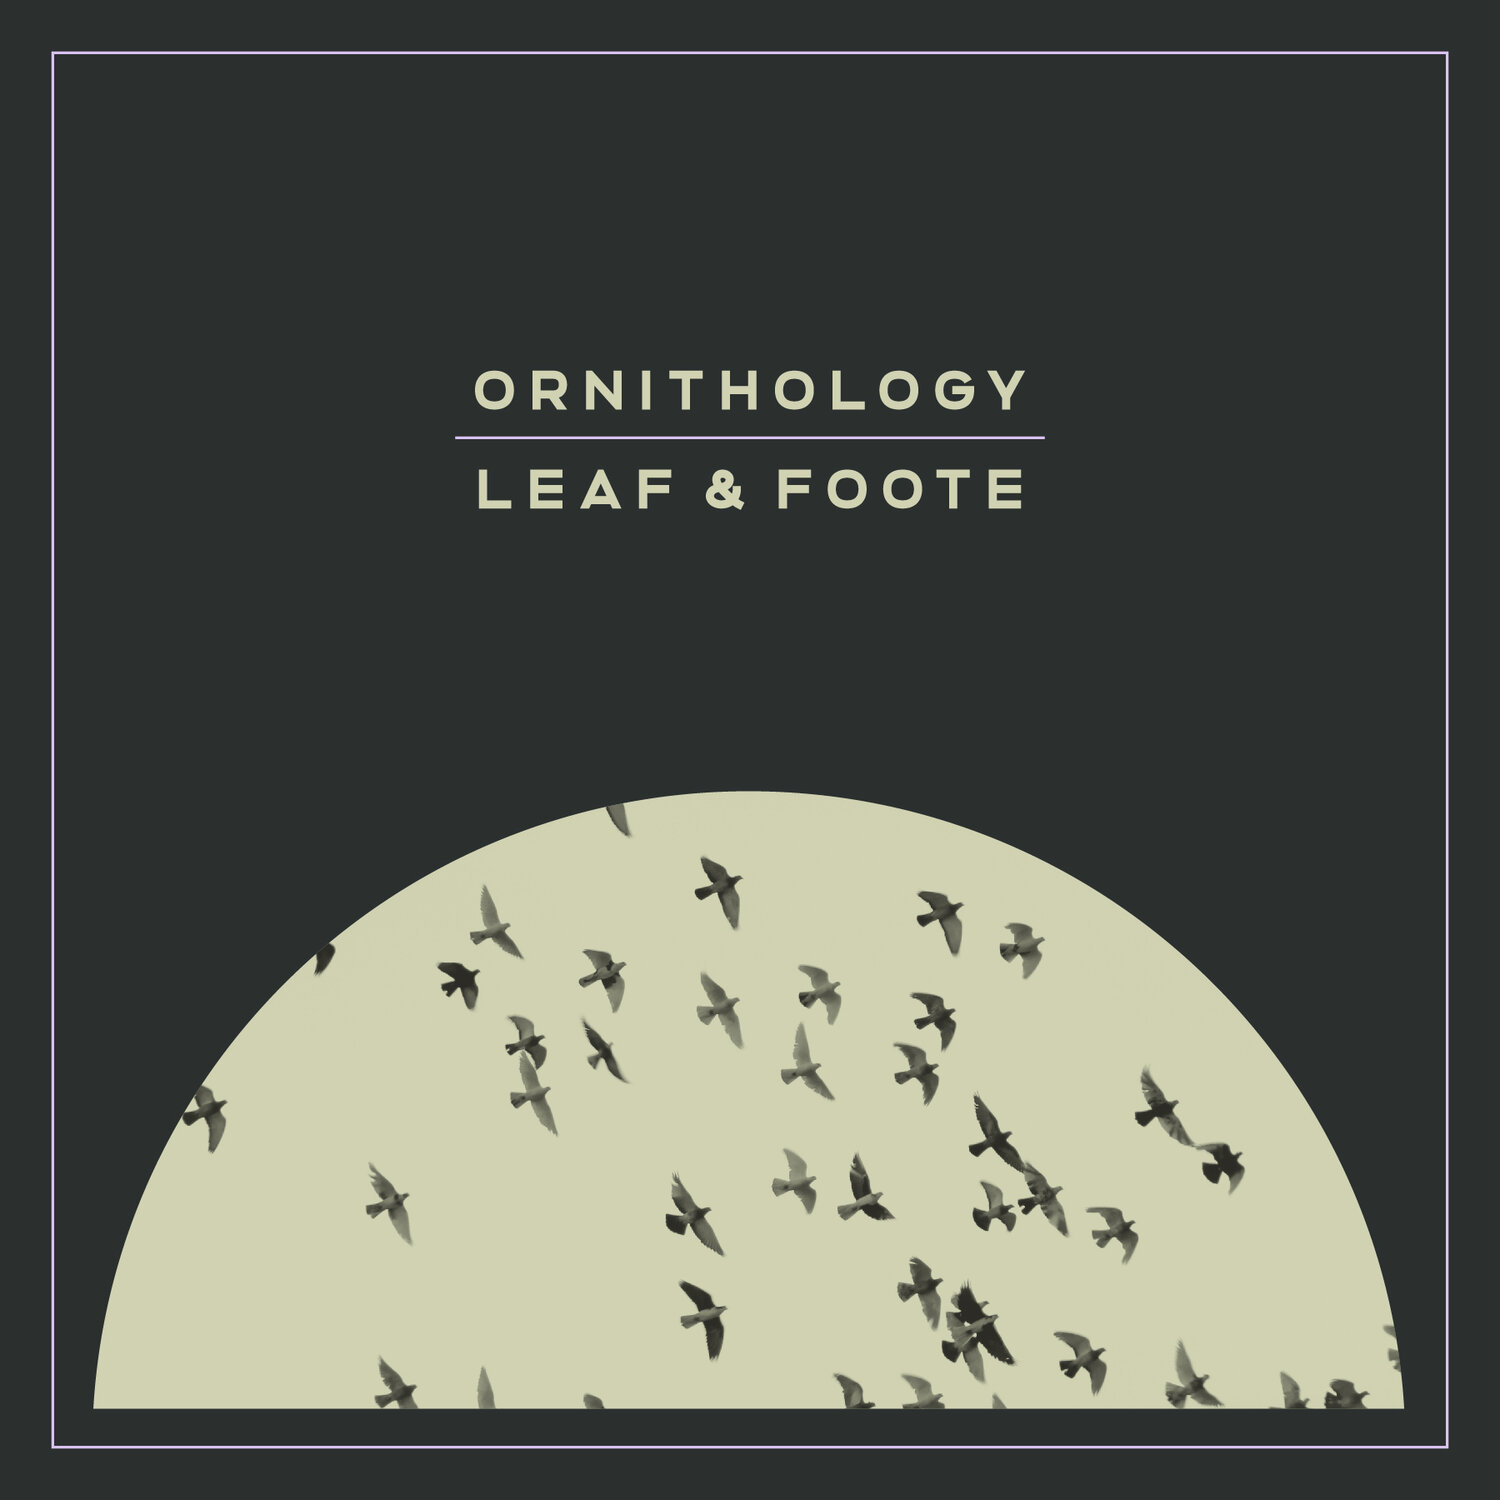 LEAFOOTE-ornithology-Cover-01.jpg